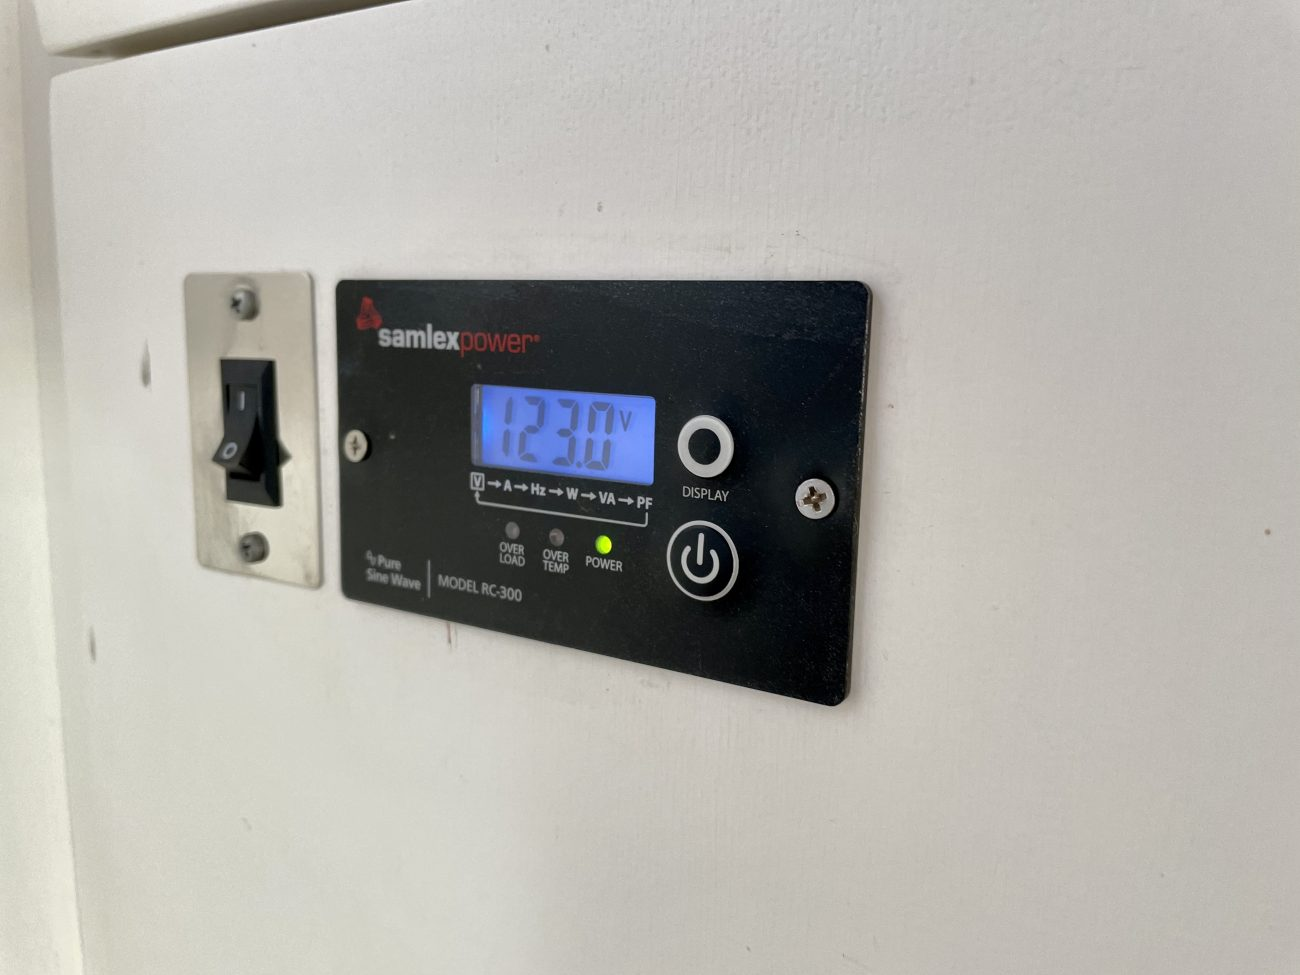 Inverter remote allows easy access for turning off and monitoring.